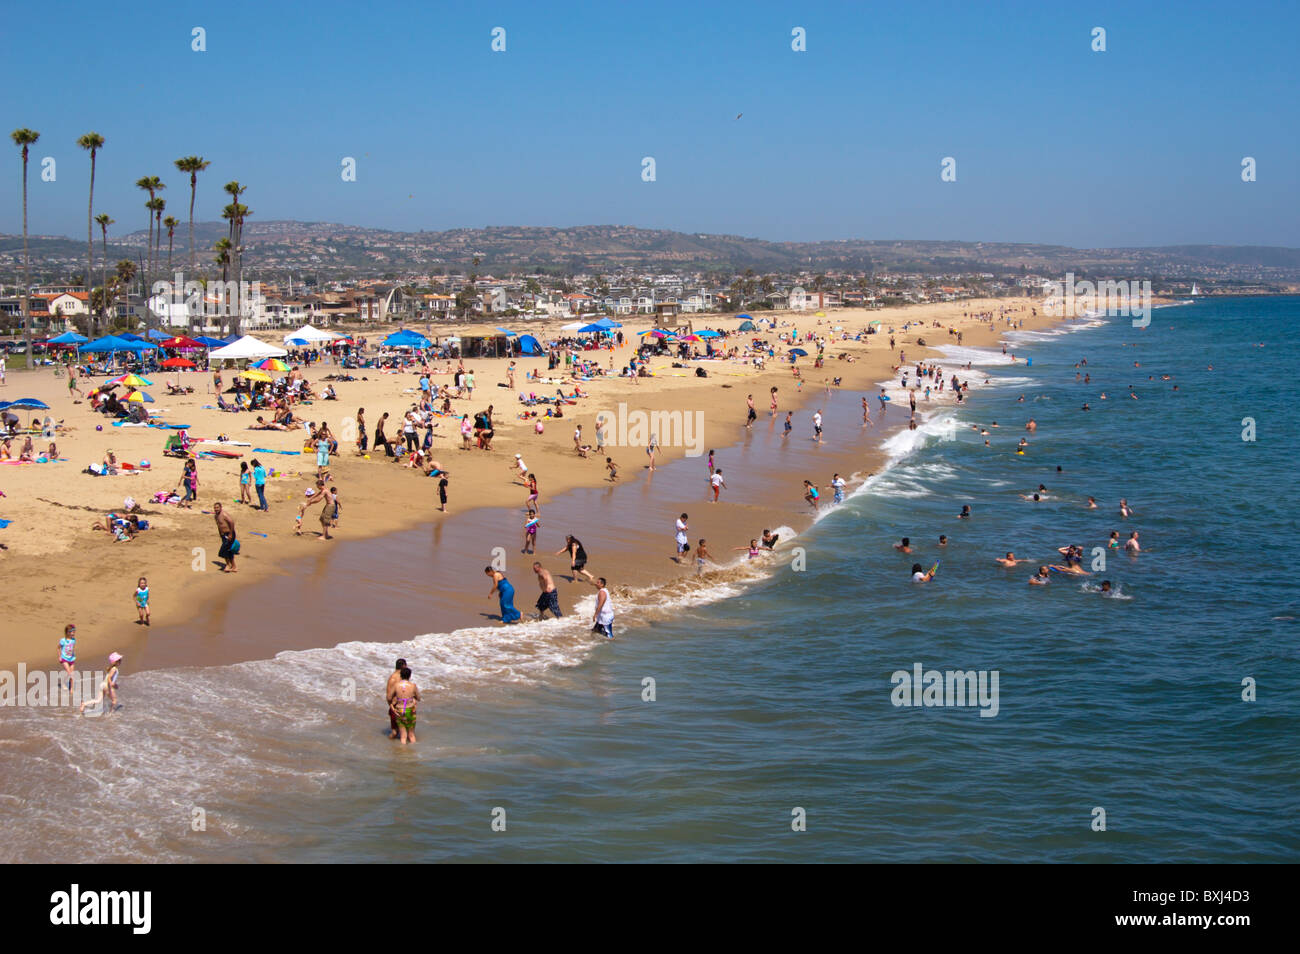 Balboa Peninsula Newport Beach Ca Usa